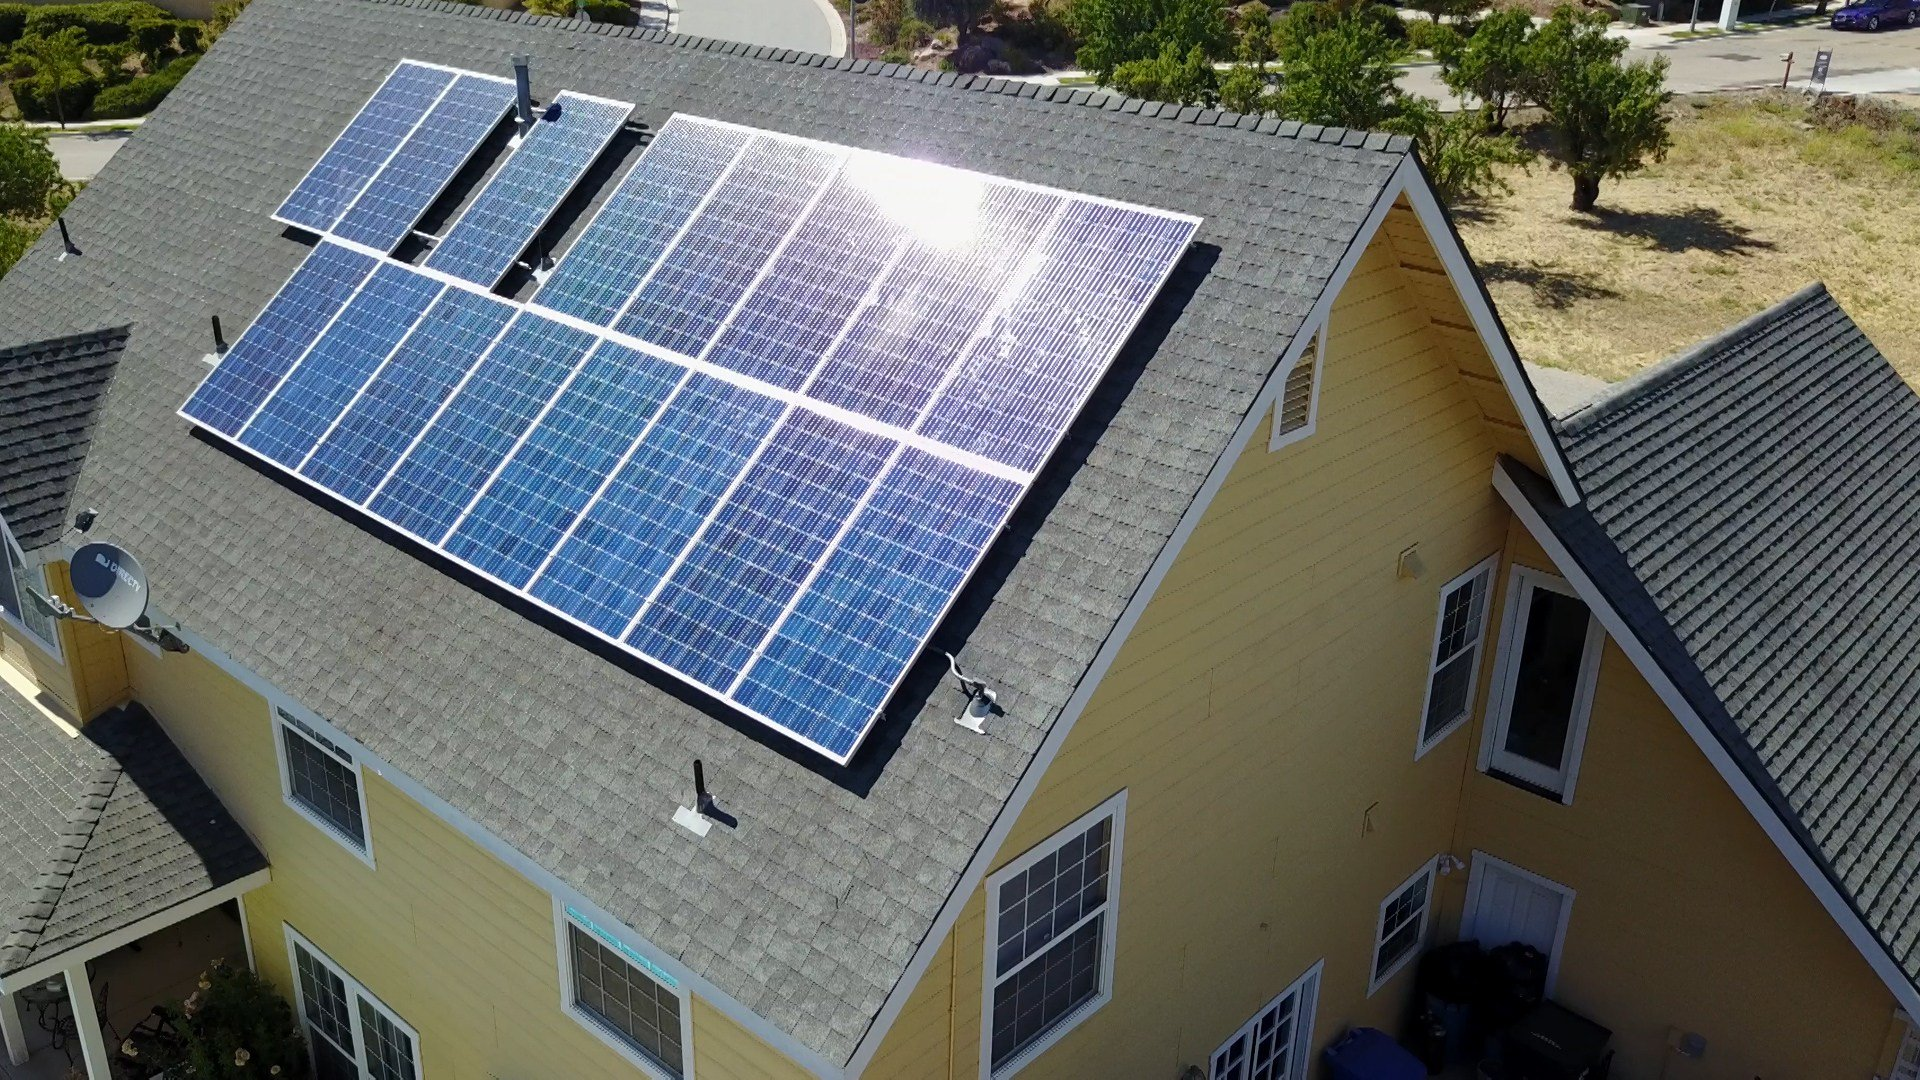 California becomes first state to require new homes have solar power